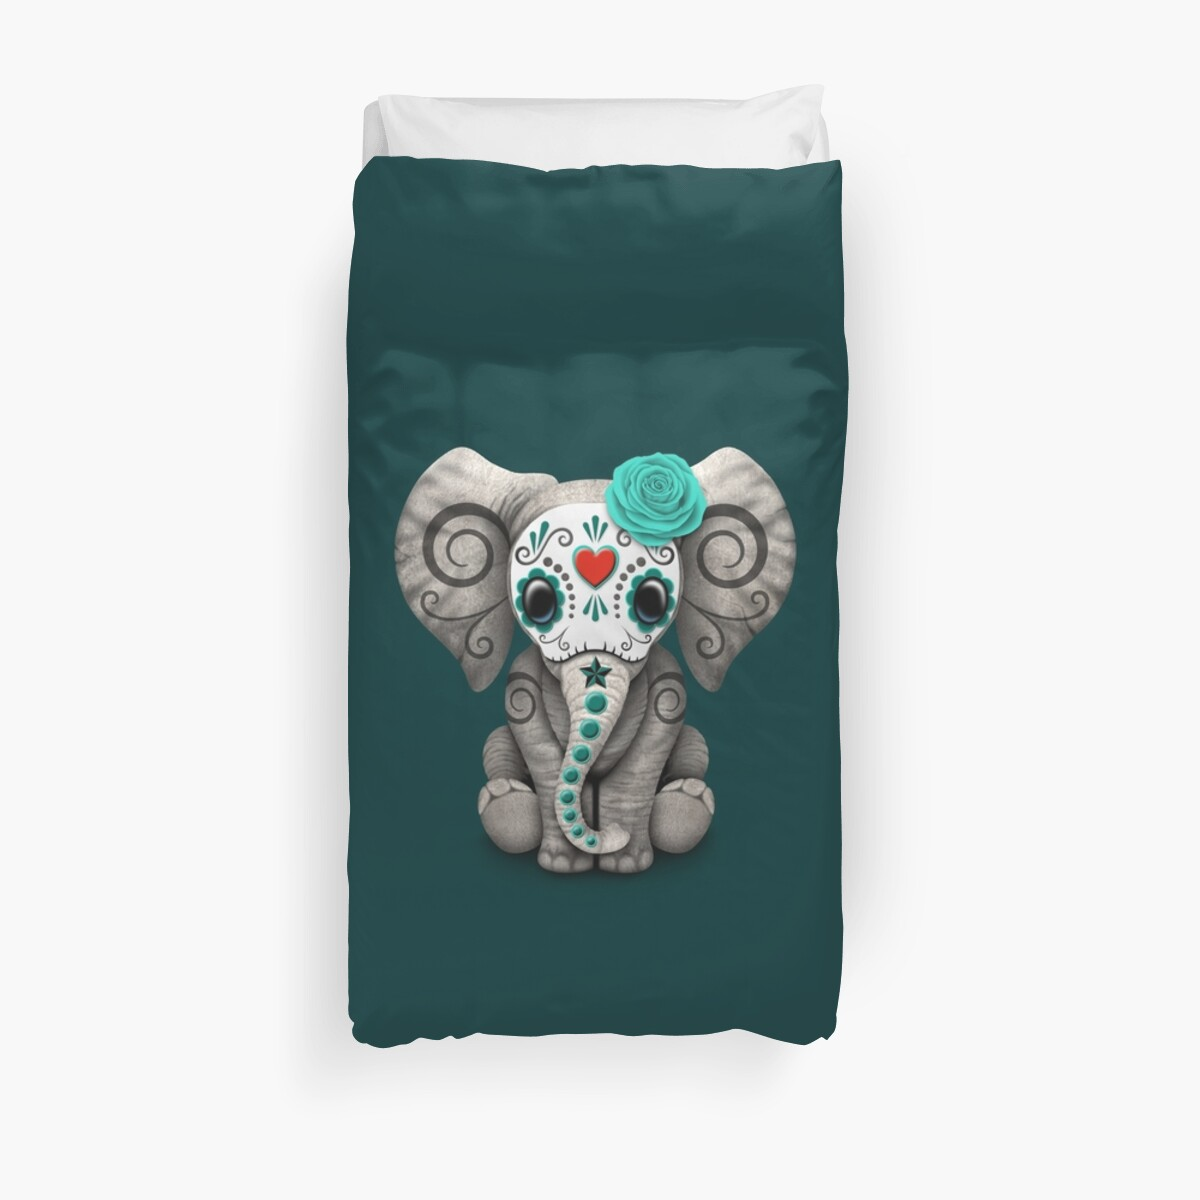 Teal Blue Day of the Dead Sugar Skull Baby Elephant by jeff bartels